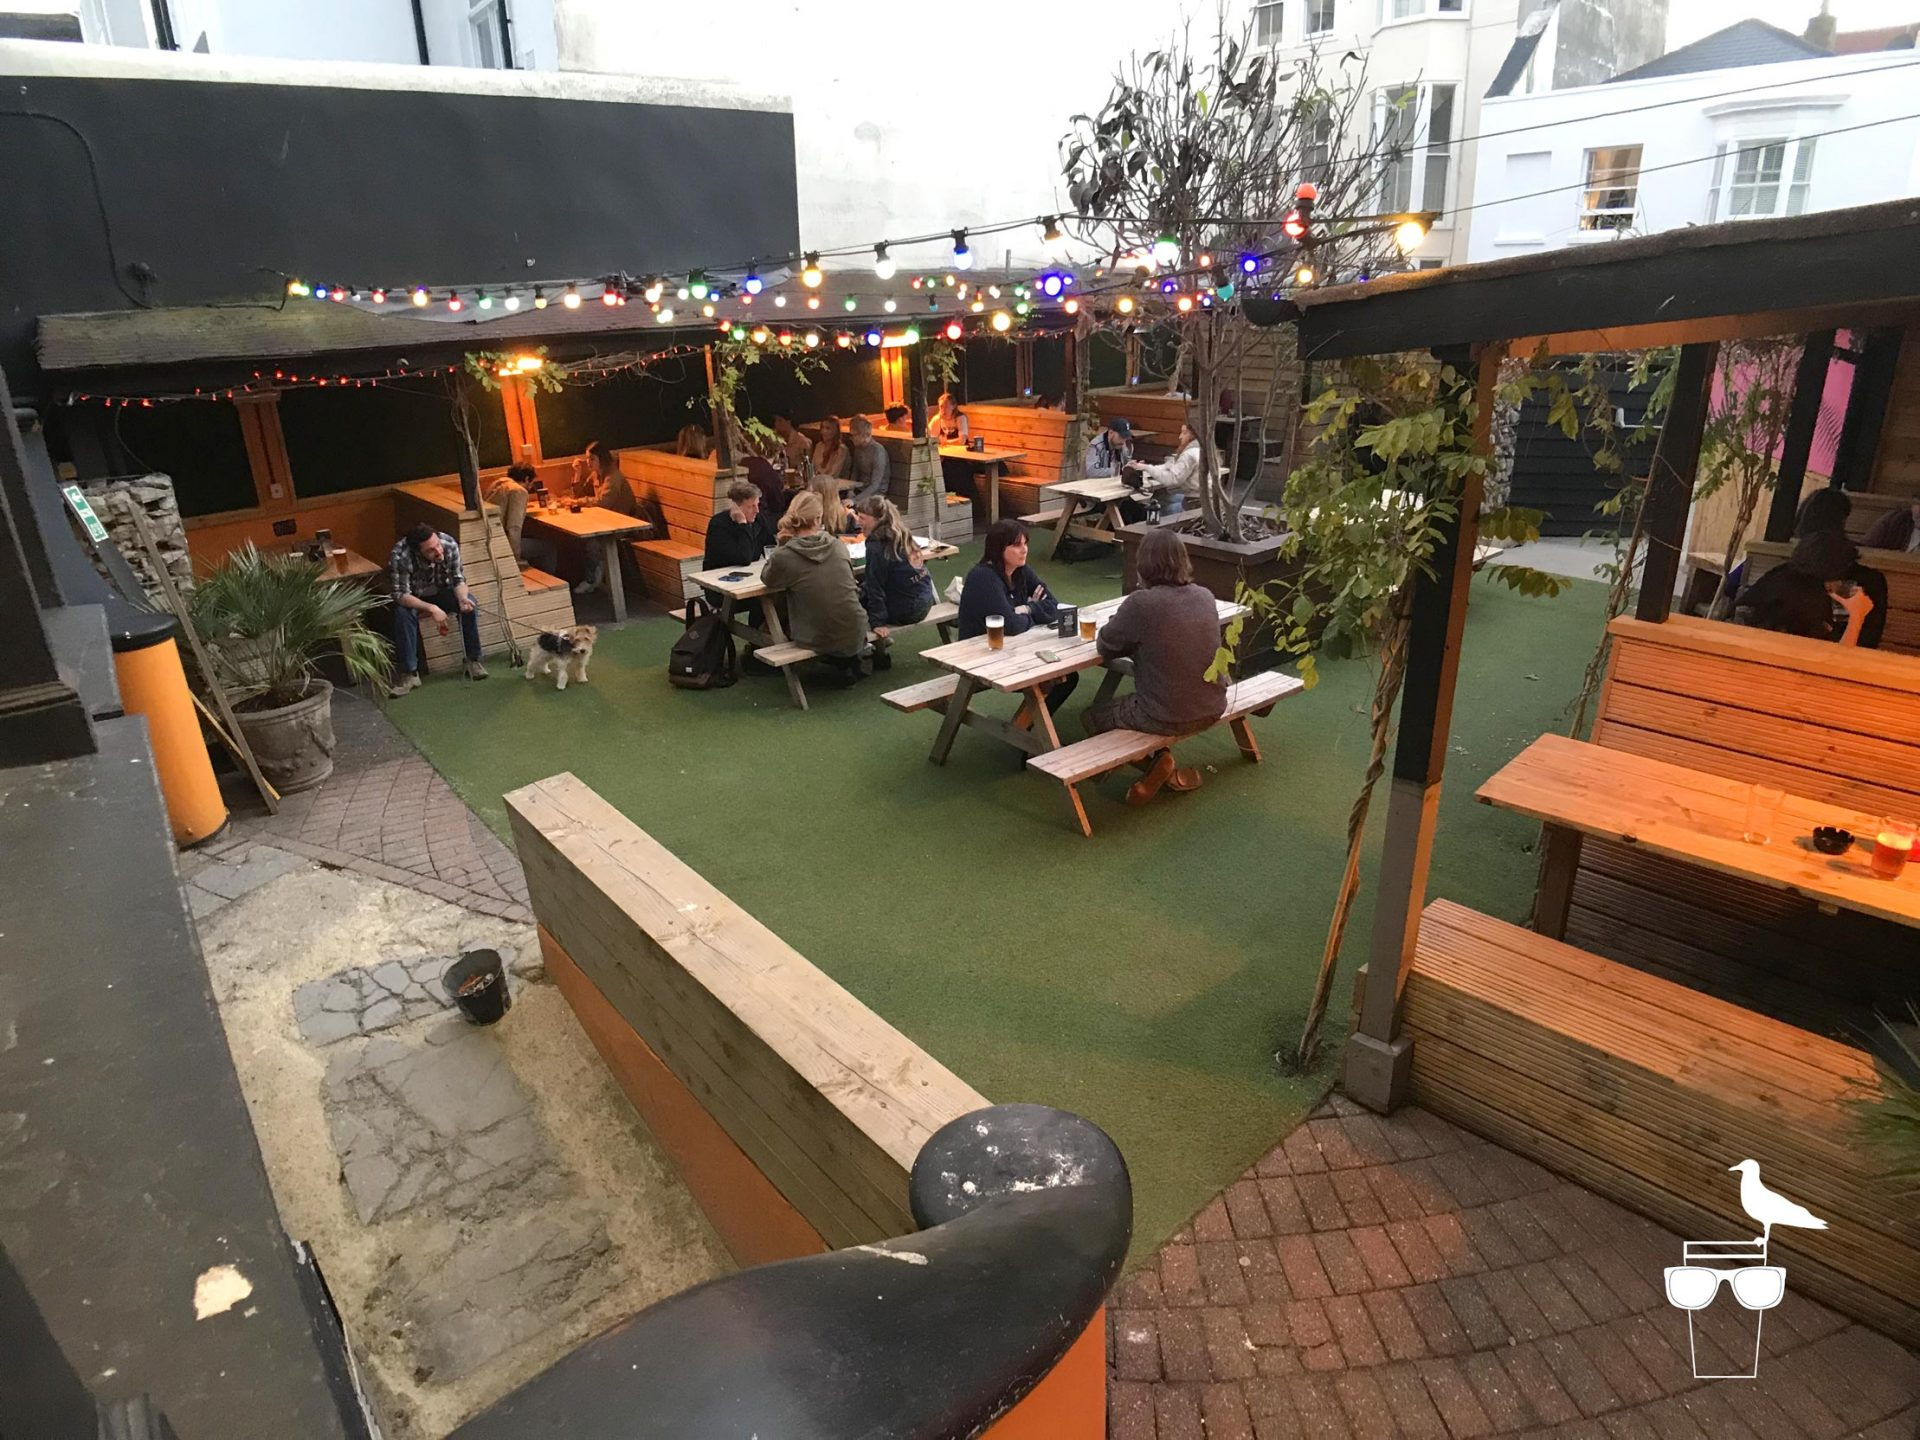 sidewinder-brighton-side-garden-wide-view